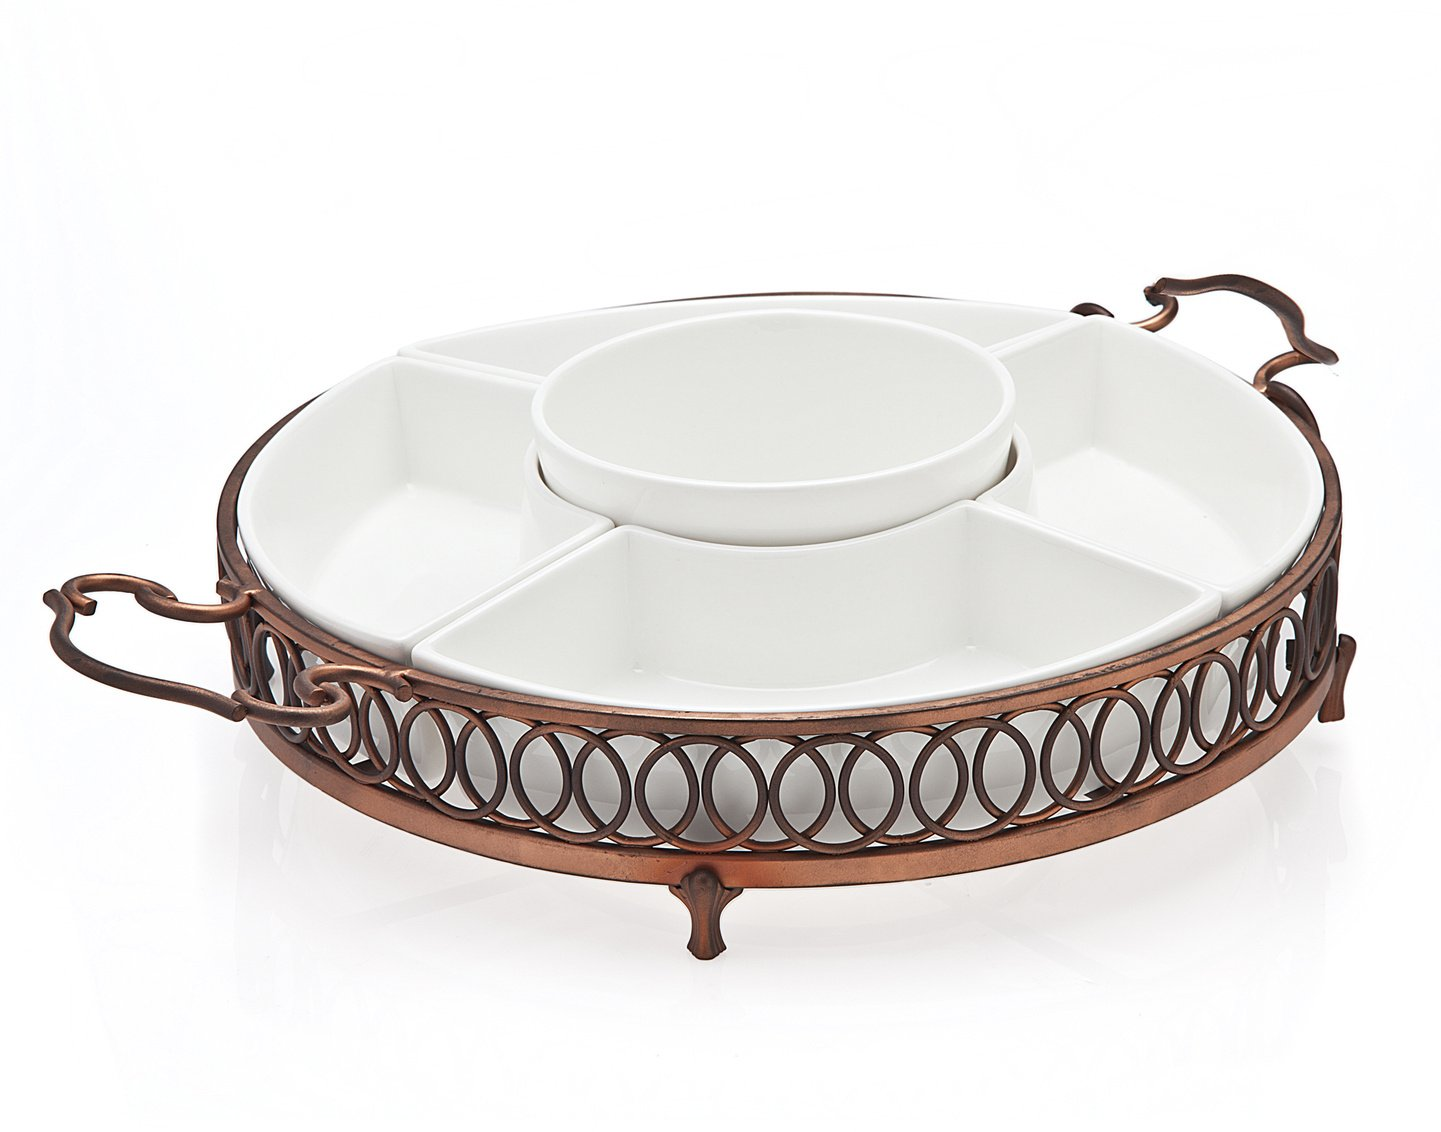 Godinger Hanover 5 Part Relish Server, Copper 96621